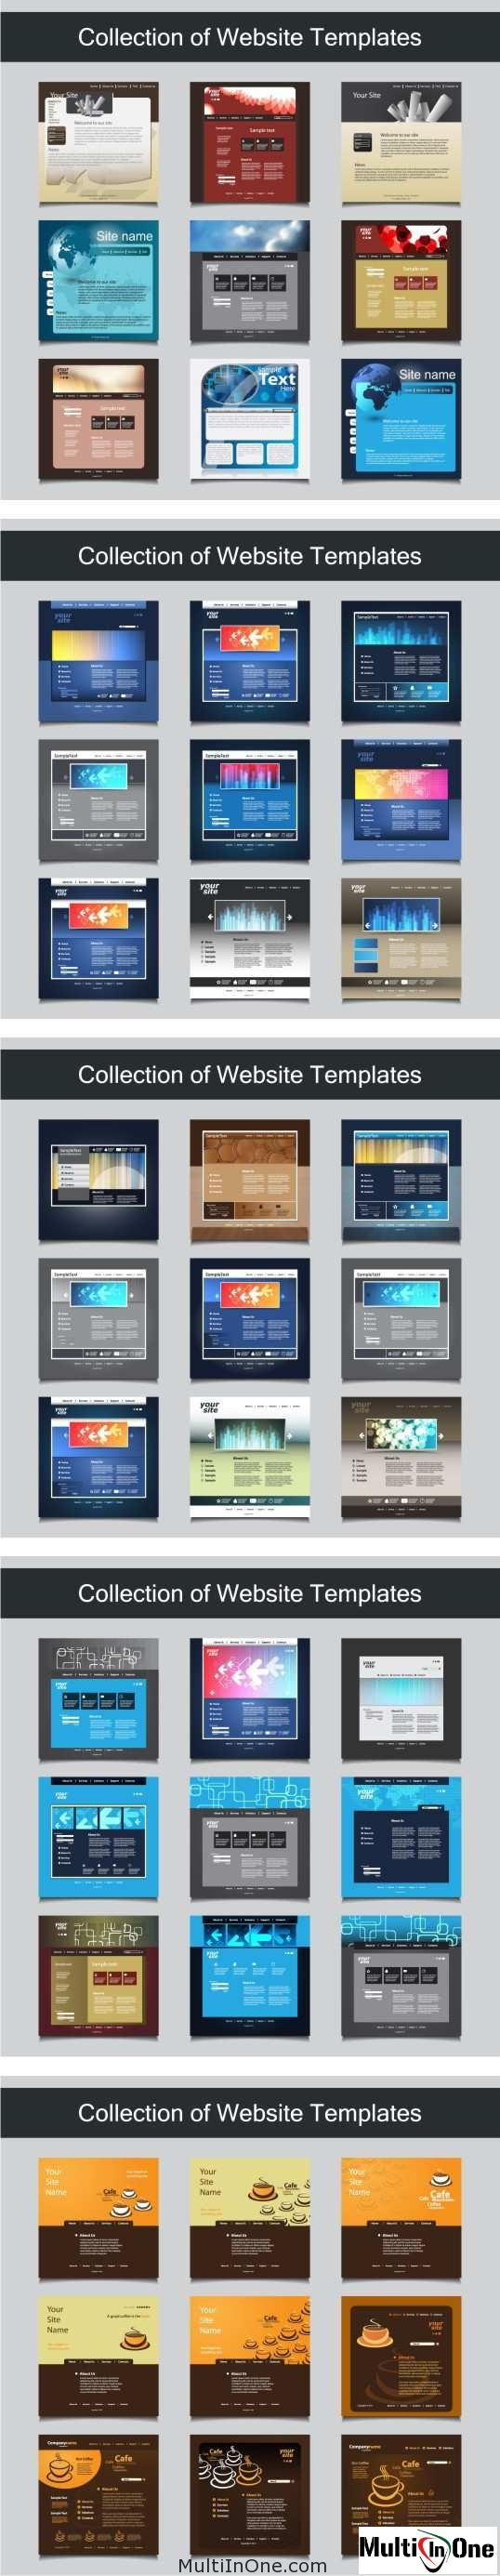 Big Set Of Websites Templates 5